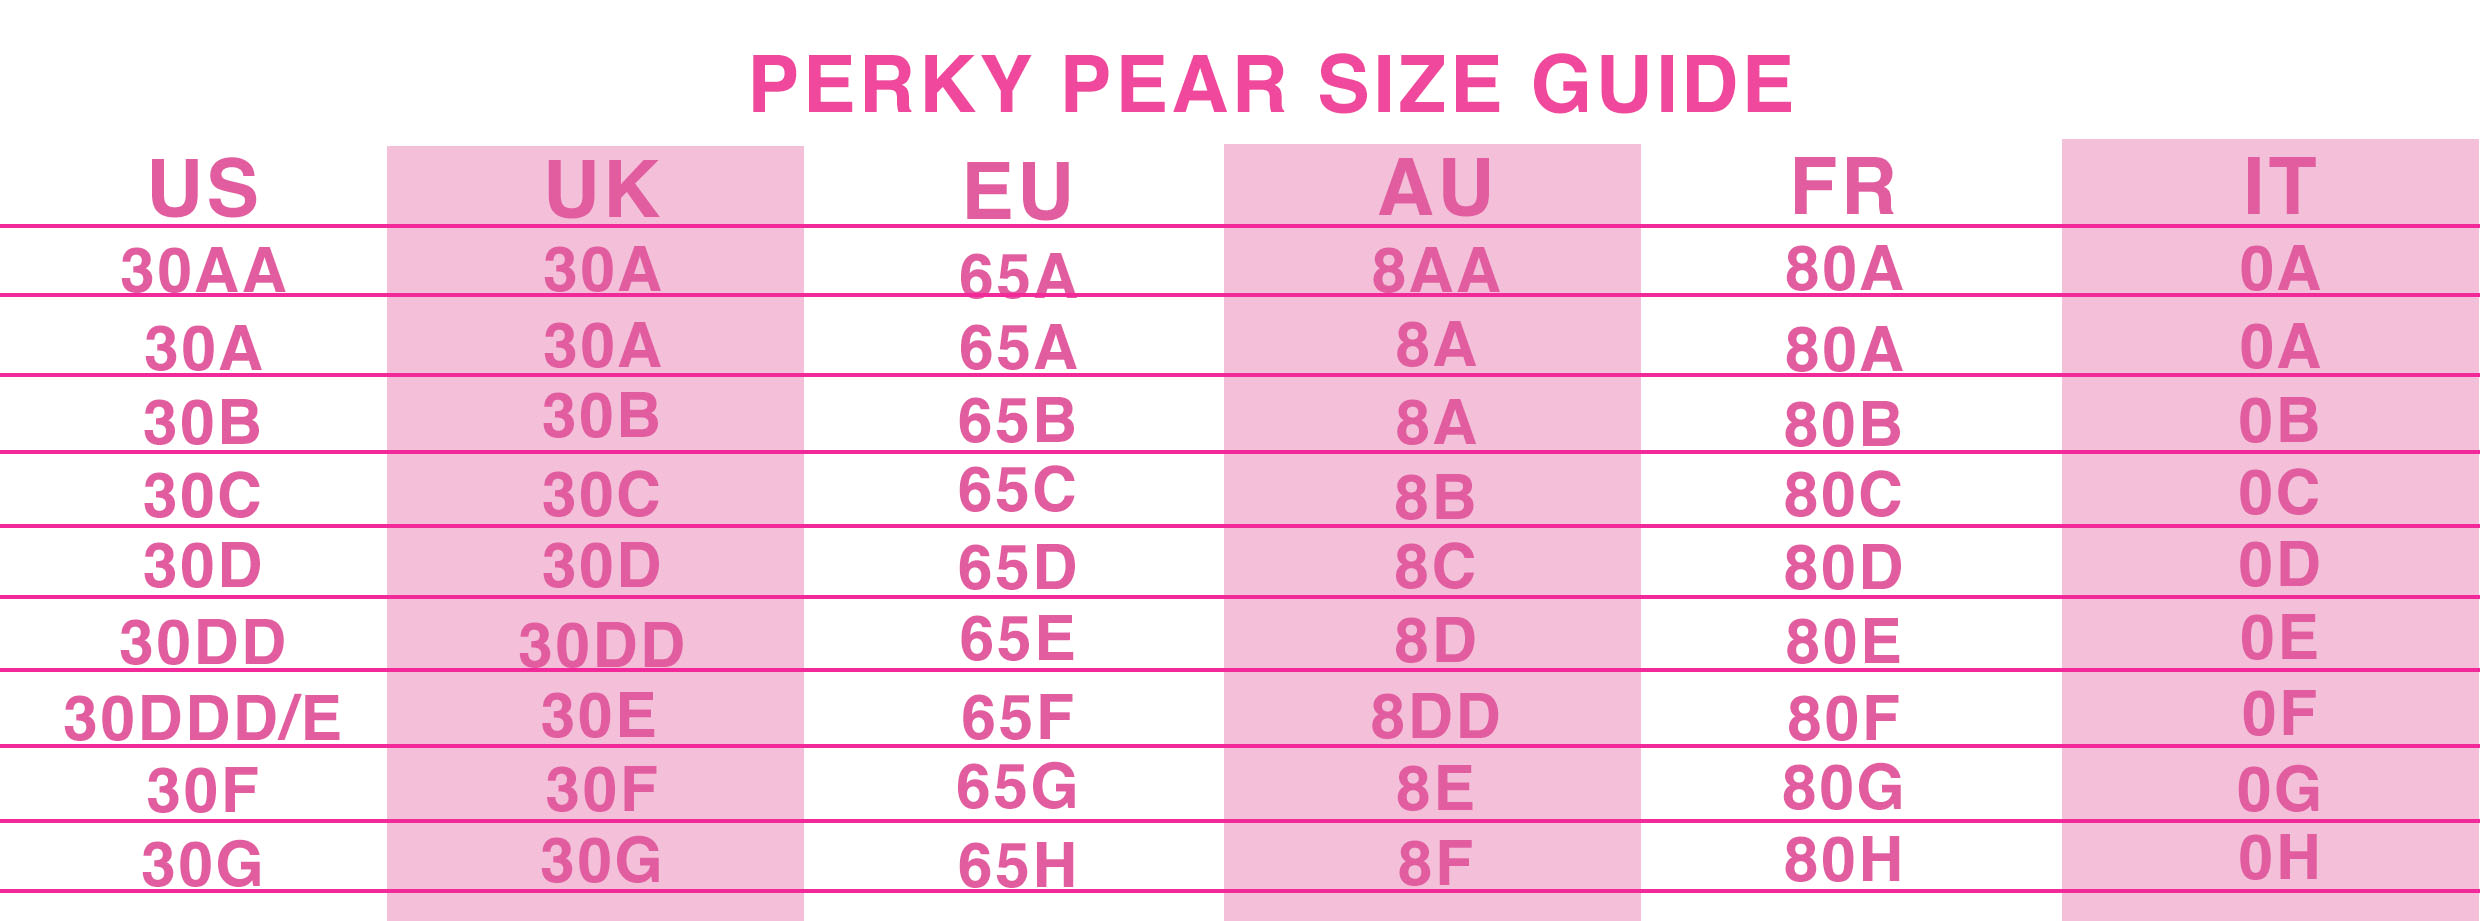 bra-cup-size-conversion-chart